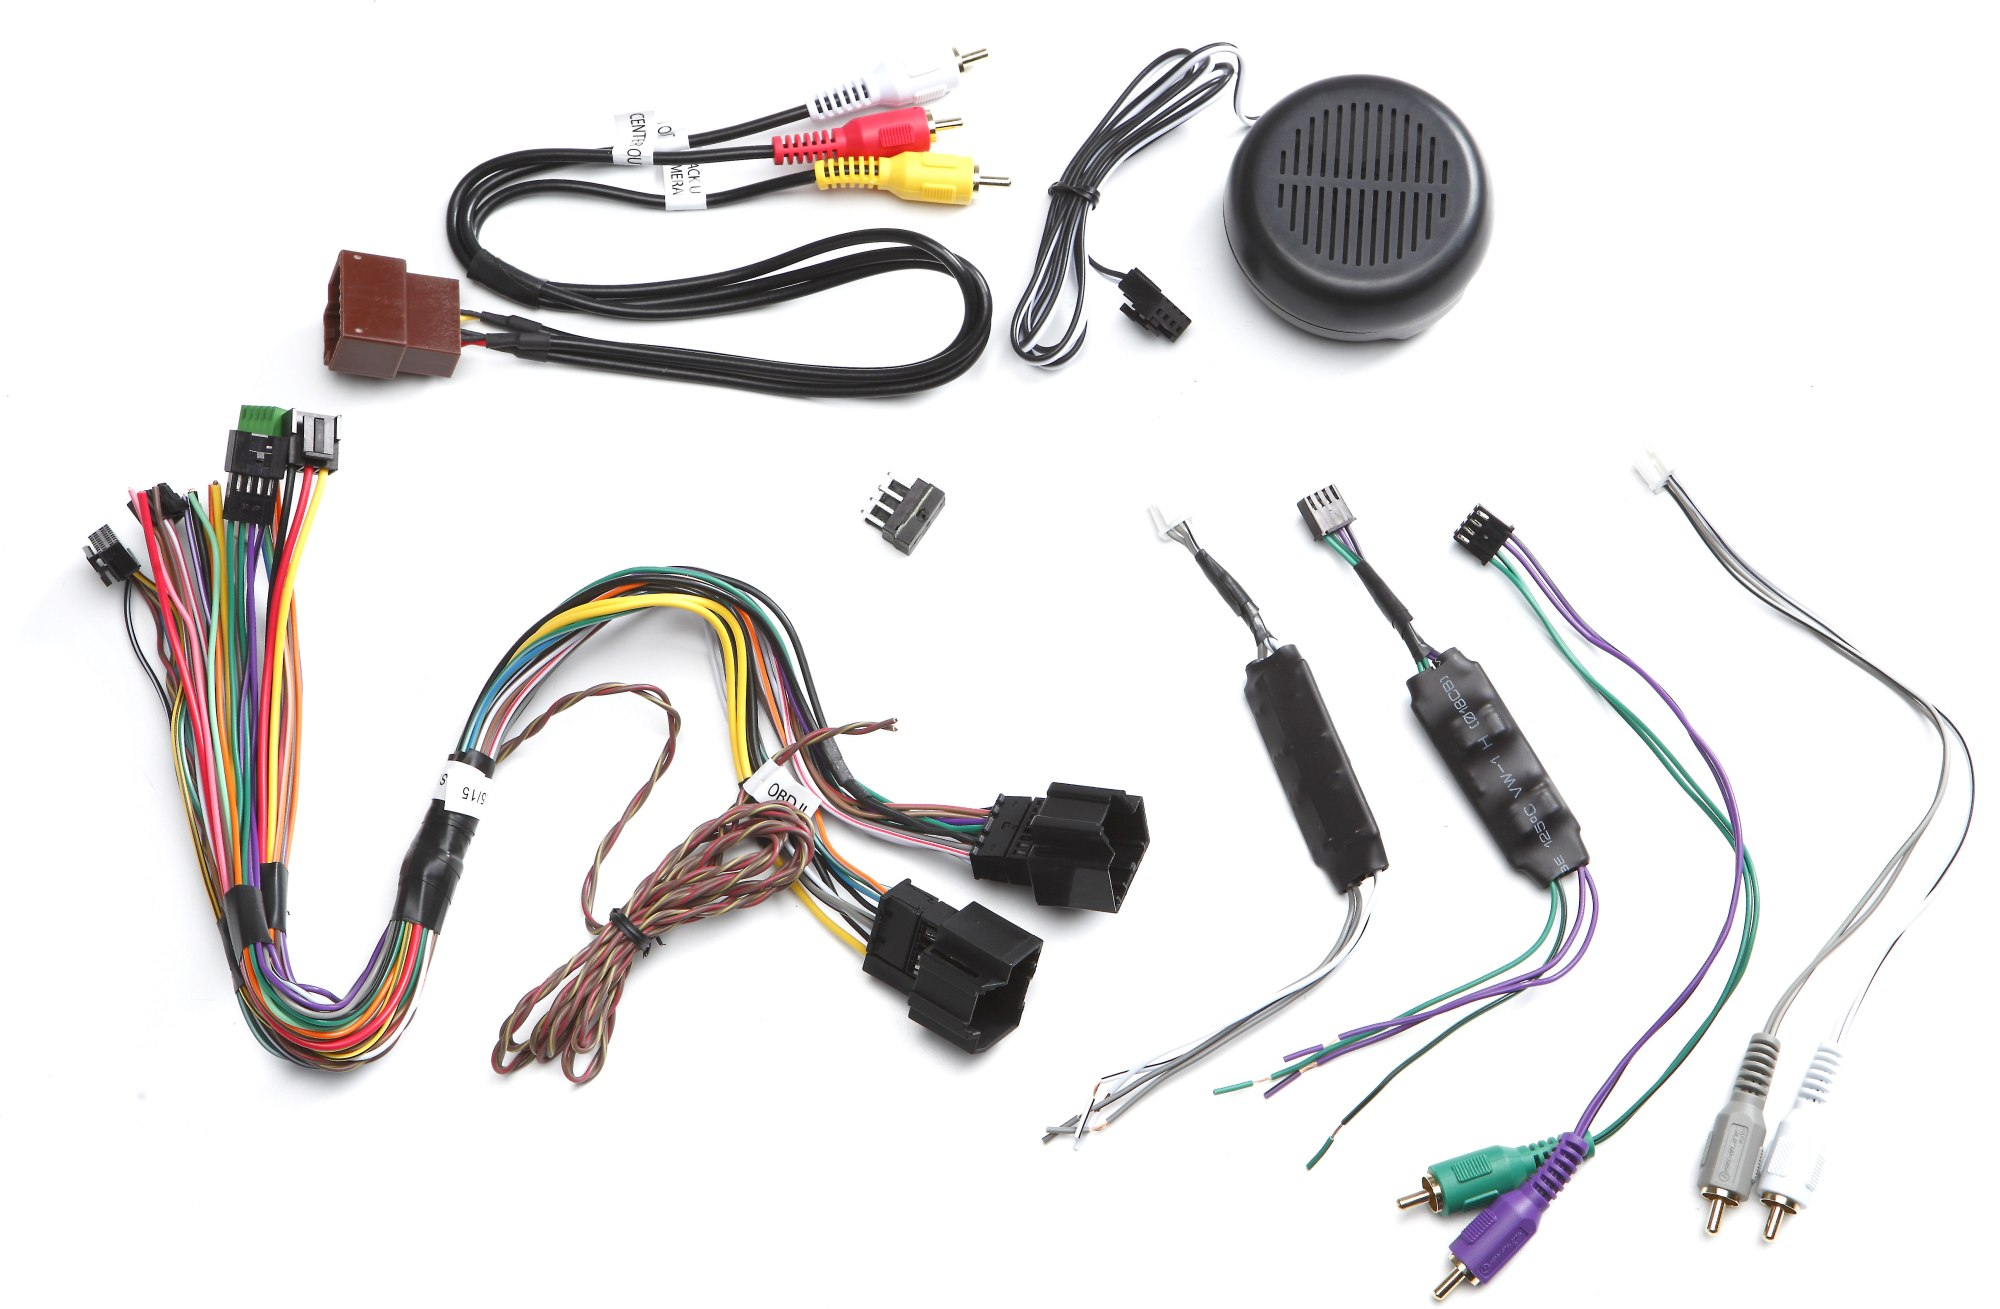 hight resolution of idatalink ads hrn rr gm5 interface harness connect a new car stereo and retain your factory steering wheel audio controls warning chimes onstar